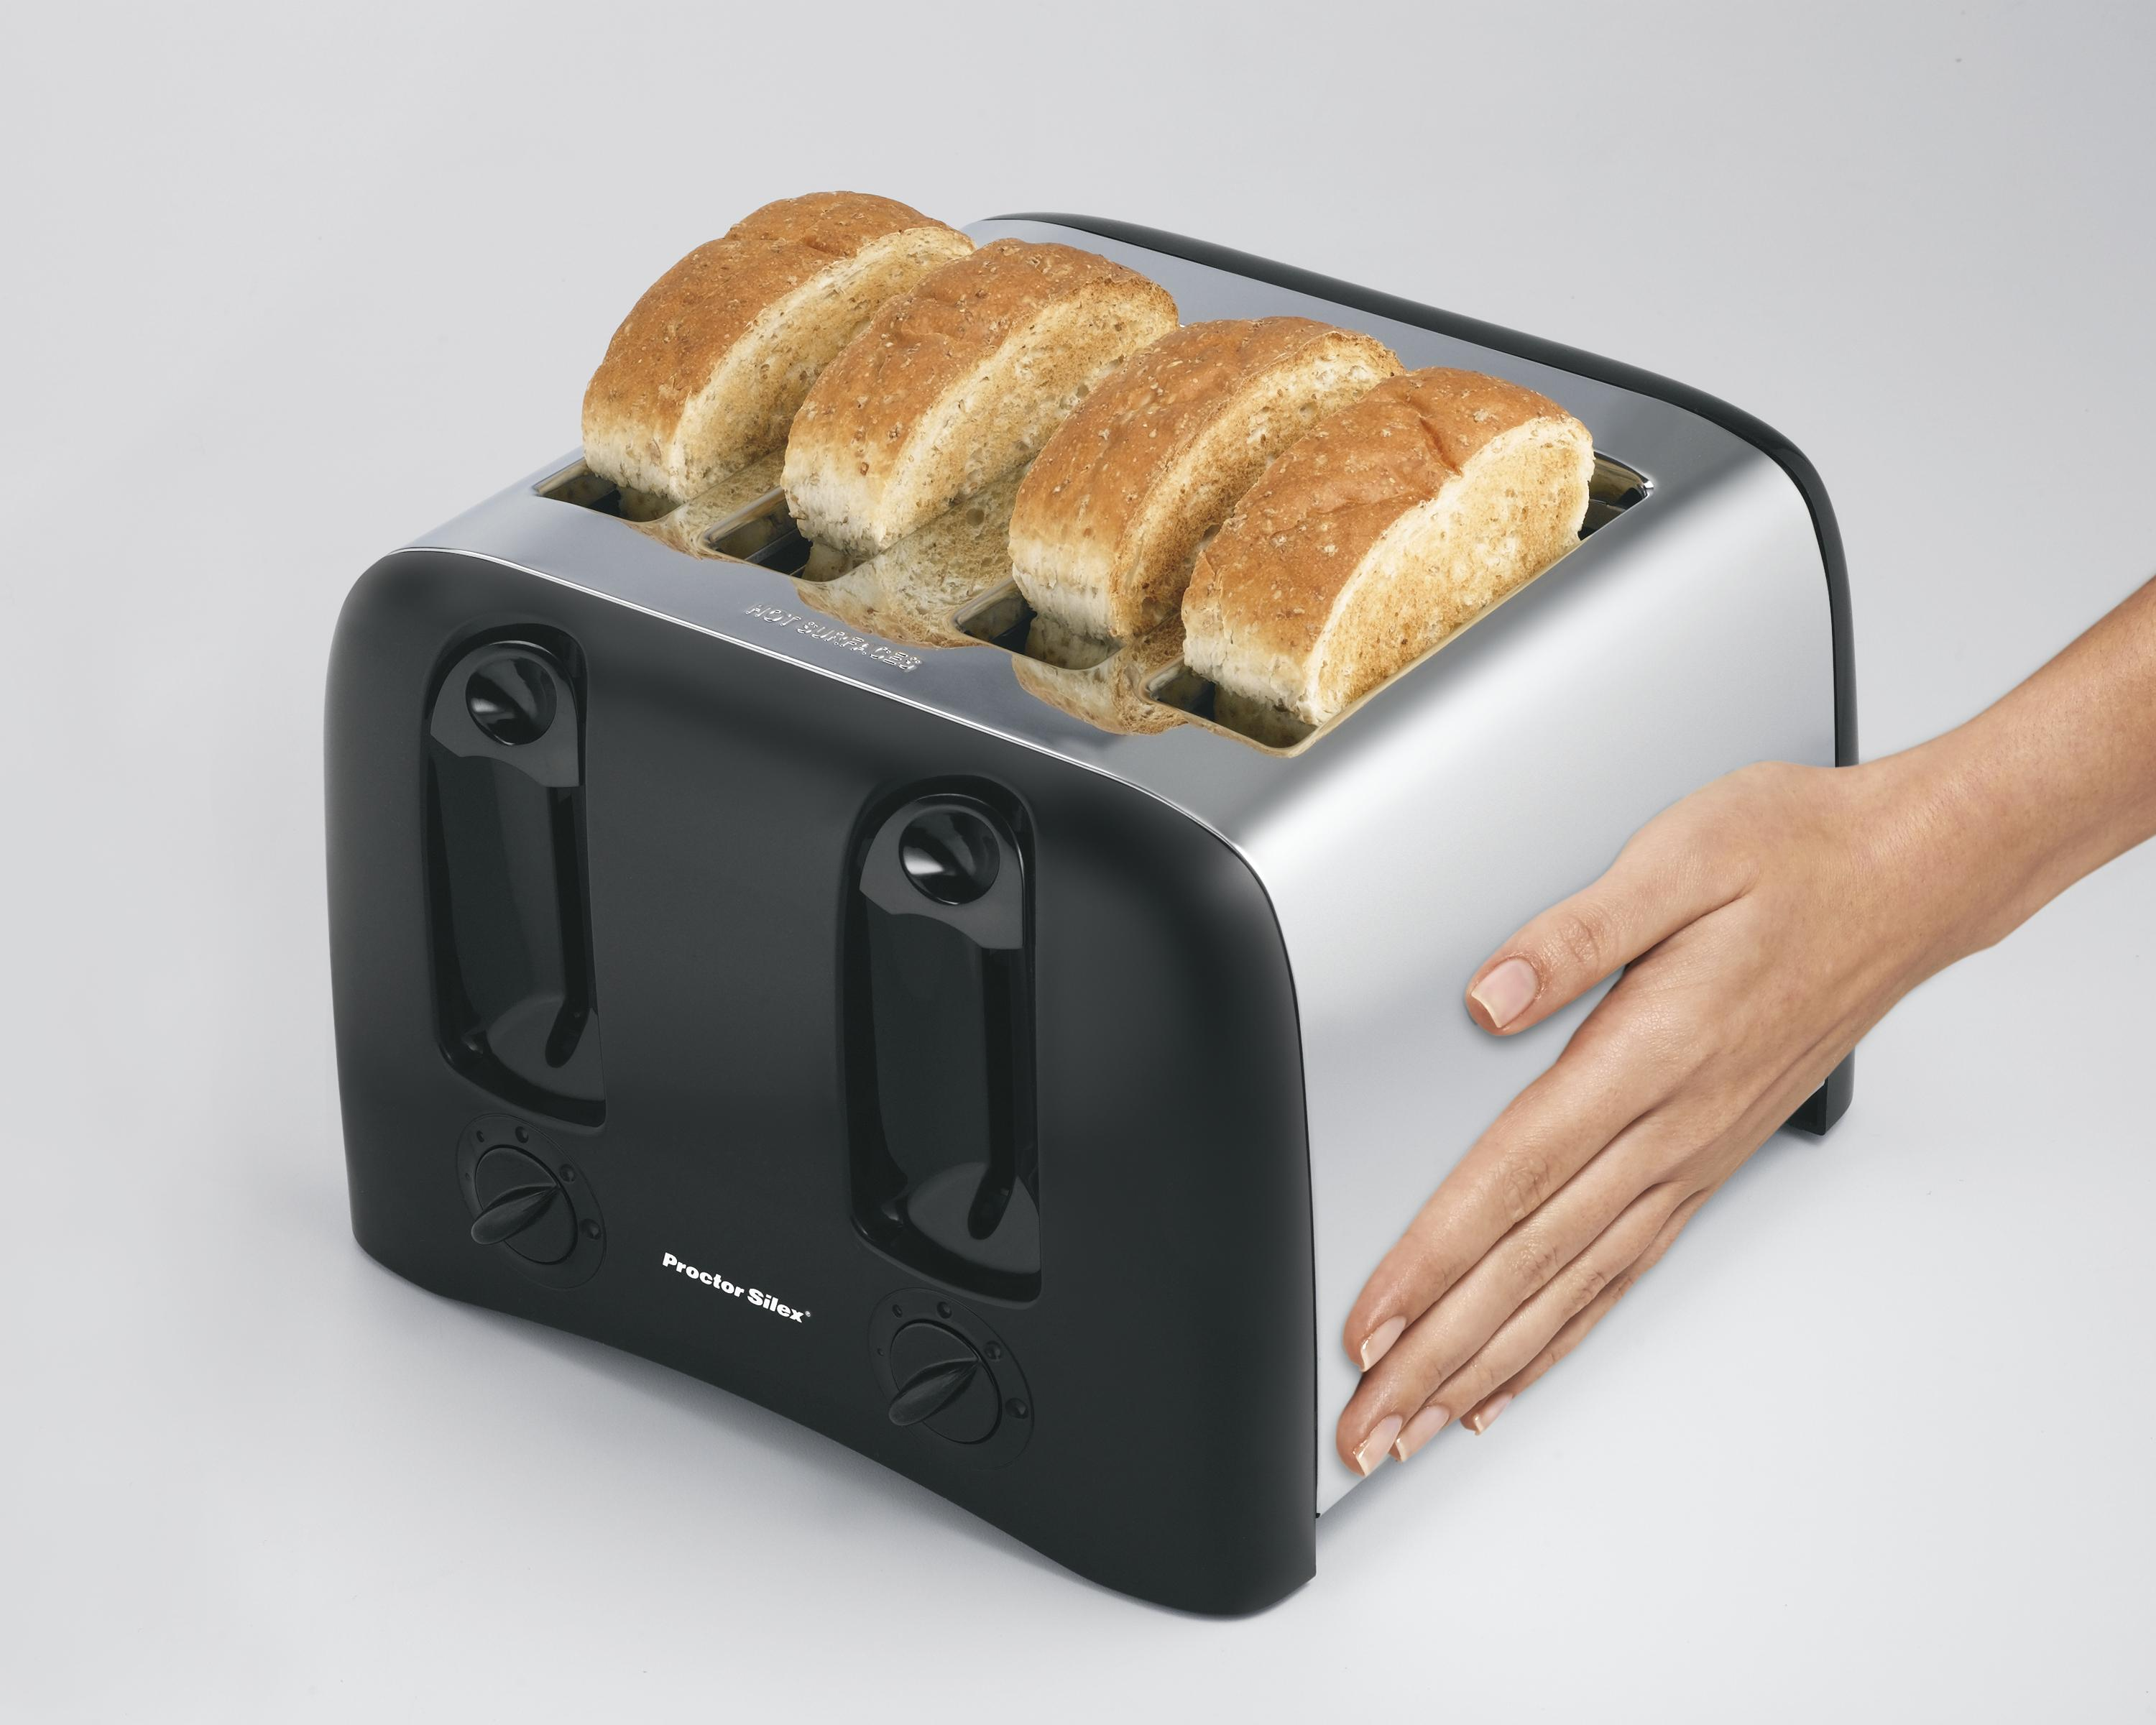 cool proctor large bread kitchen two amazon compact silex slice best dining stainless com cuisinart dp four steel oster toasters toaster digital bagel touch